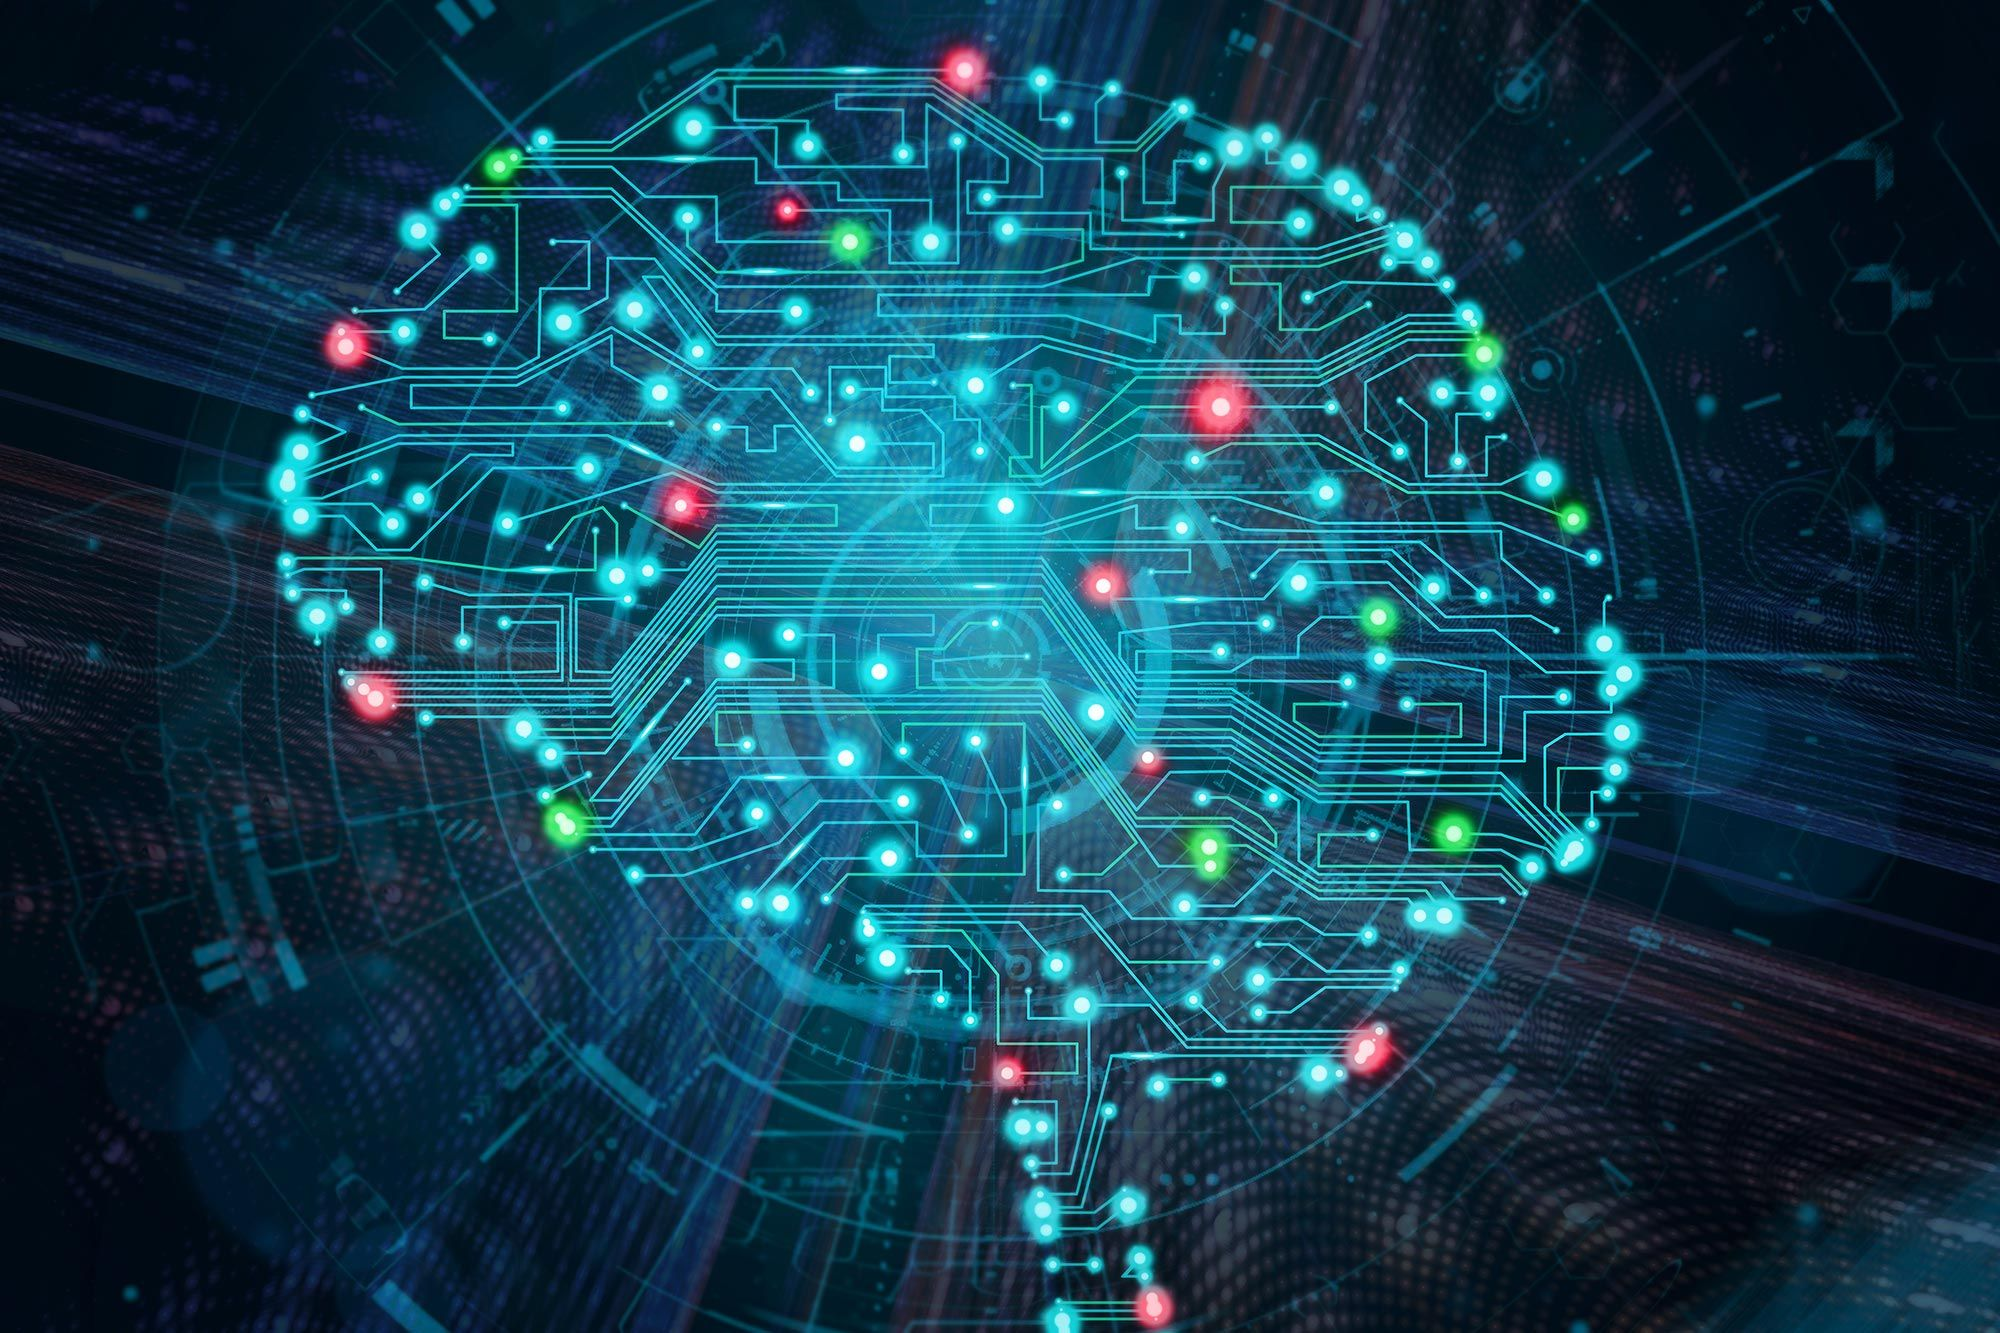 Artificial Intelligence System Learns The Fundamental Laws Of Quantum Mechanics In 2020 Quantum Mechanics Artificial Intelligence Technology Theoretical Computer Science